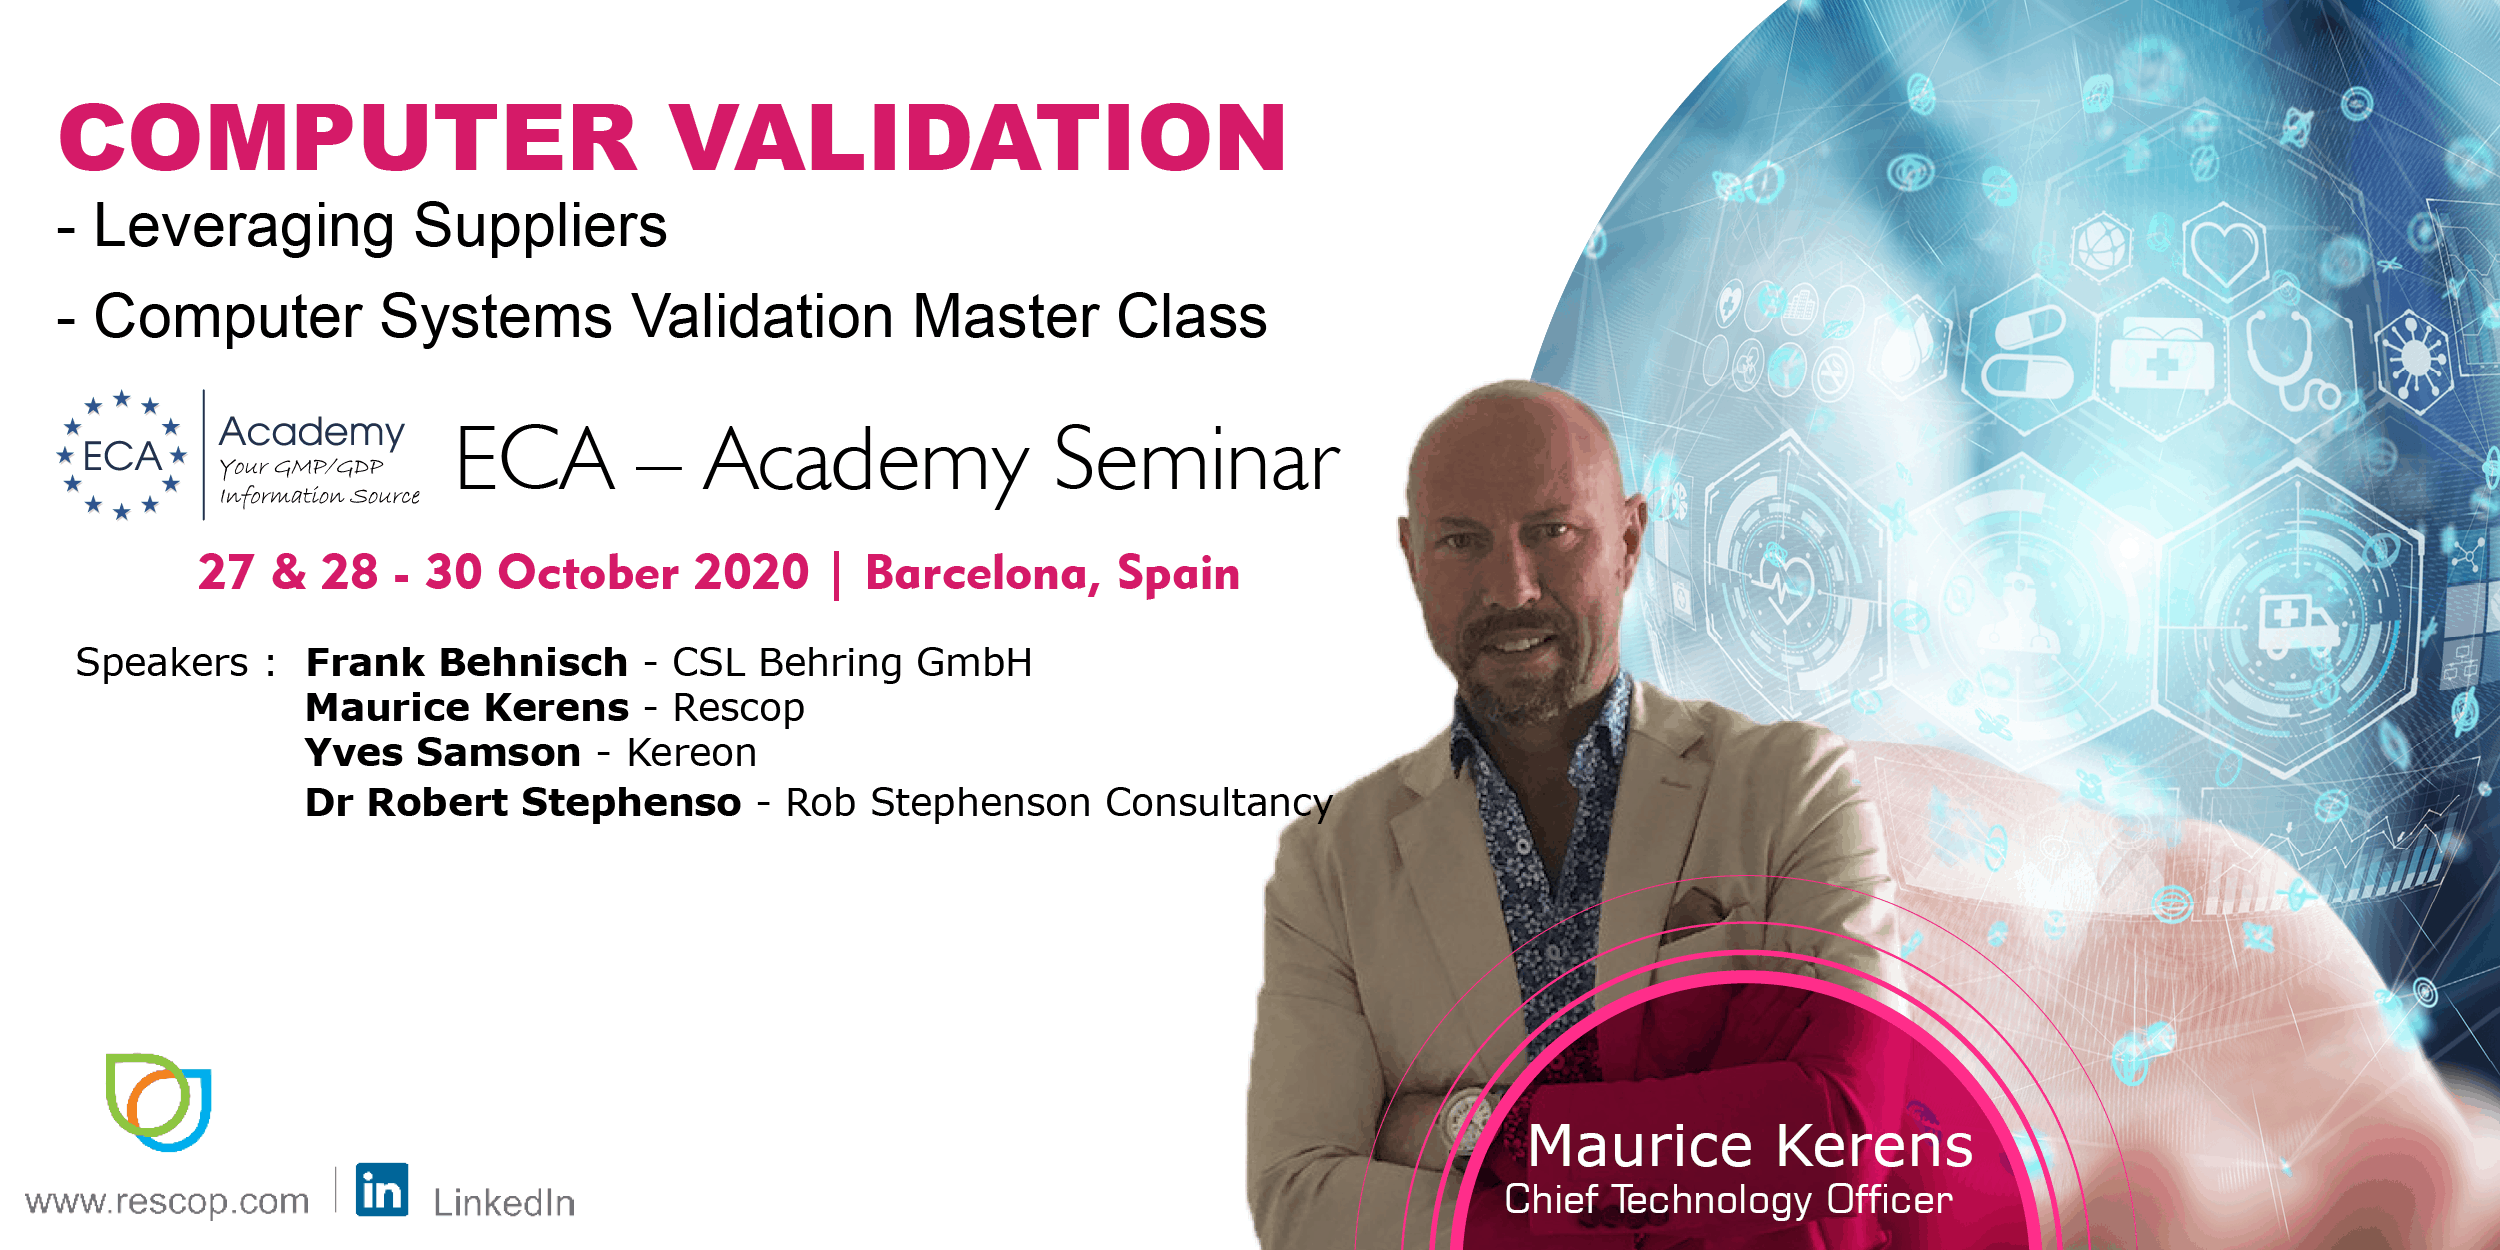 ECA -Academy Computer Validation Seminar